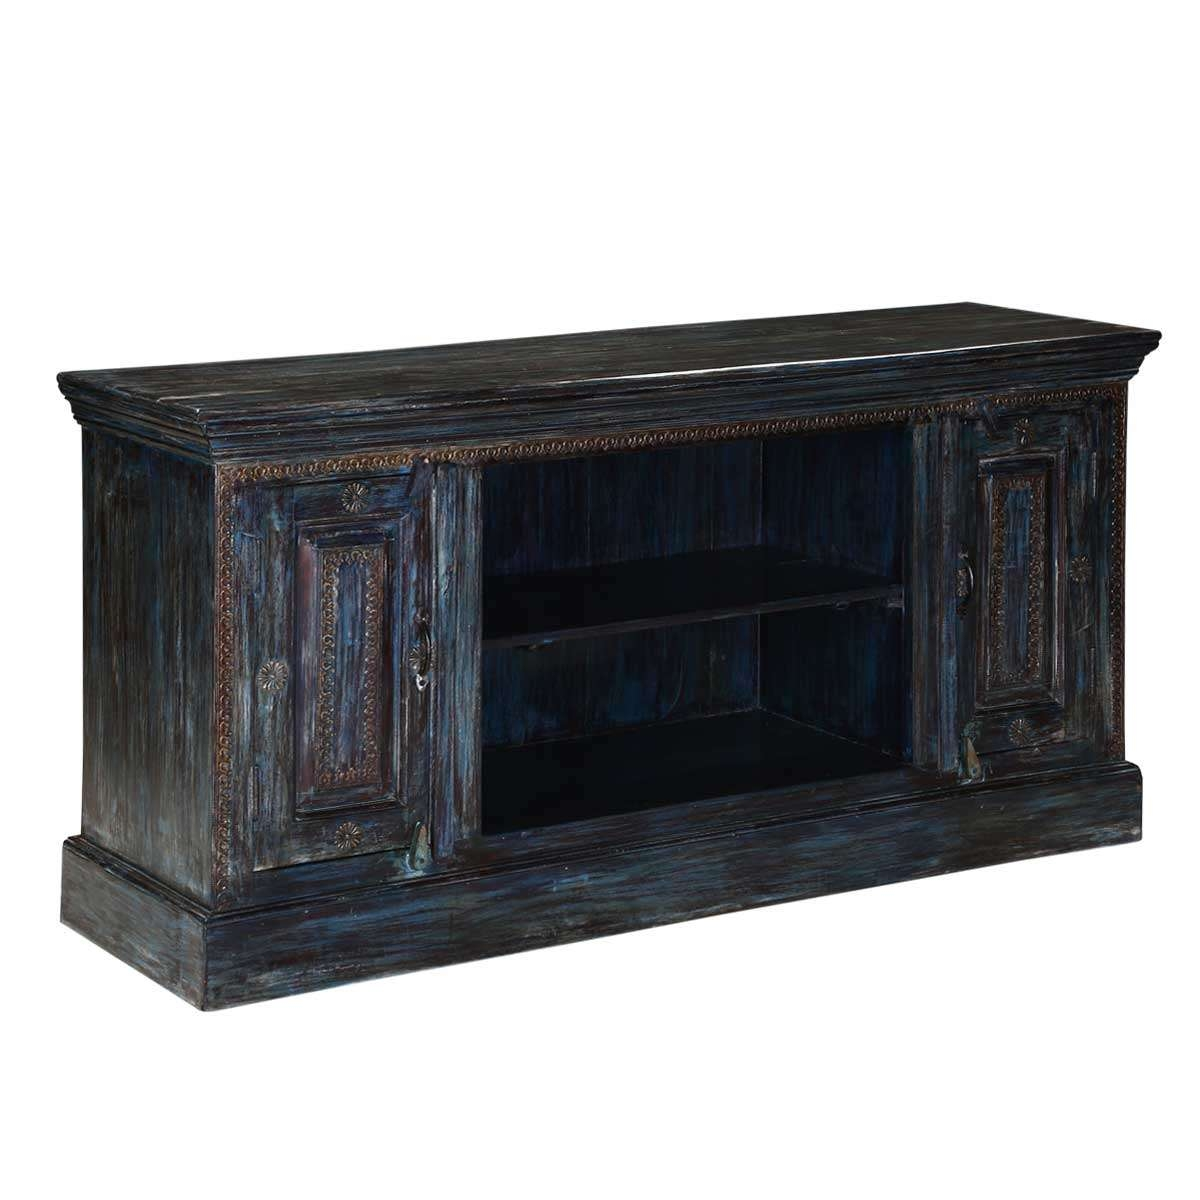 Midnight Reclaimed Wood Rustic Tv Stand Media Cabinet Inside Rustic Tv Stands (View 16 of 20)